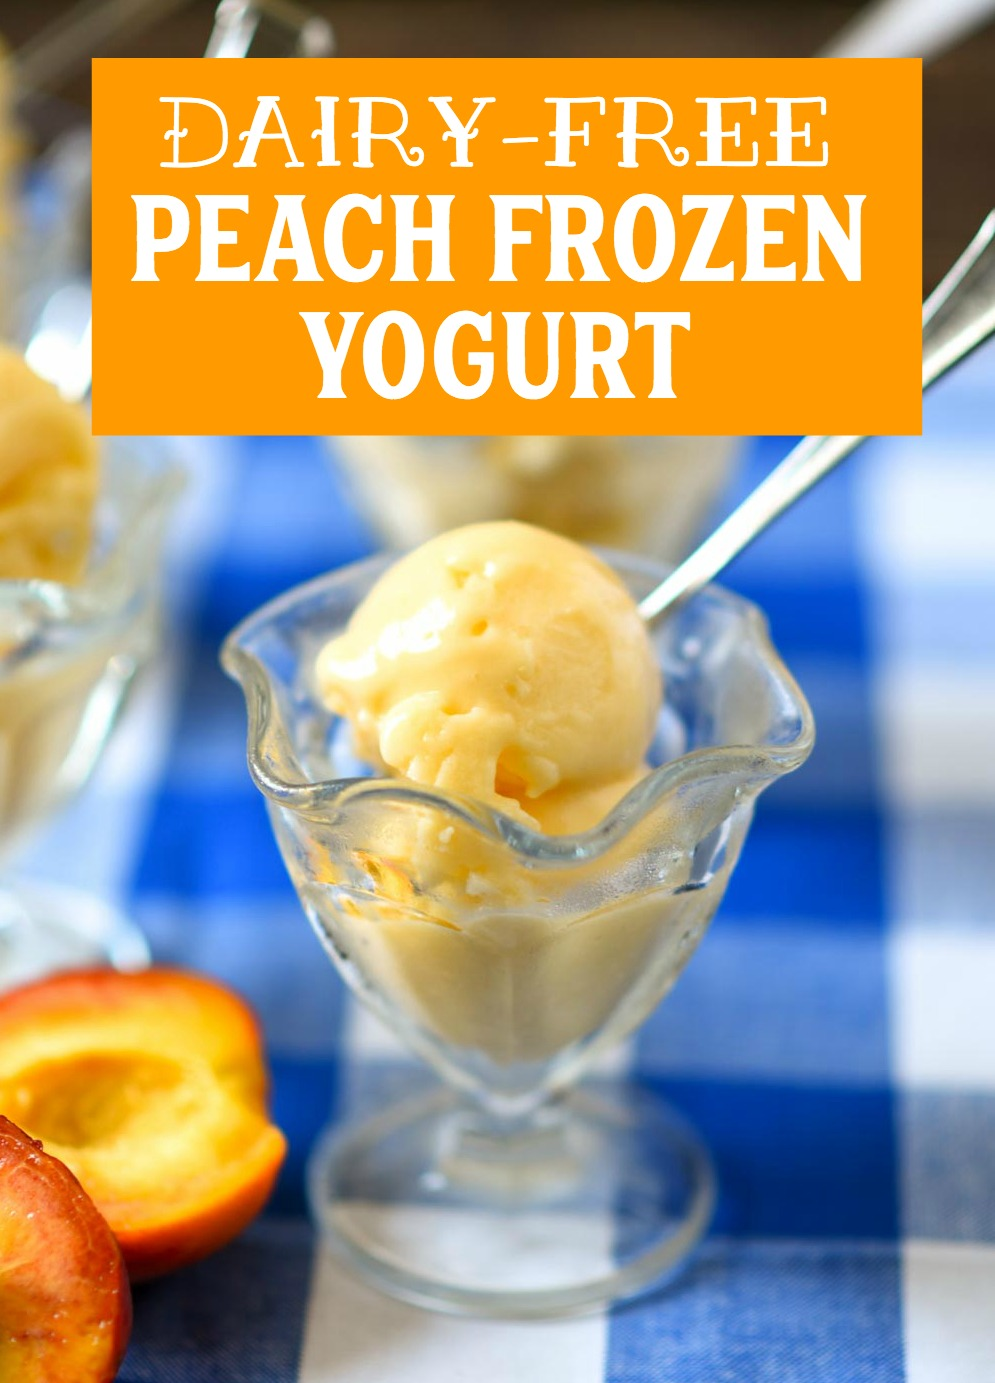 Dairy-Free Peach Frozen Yogurt